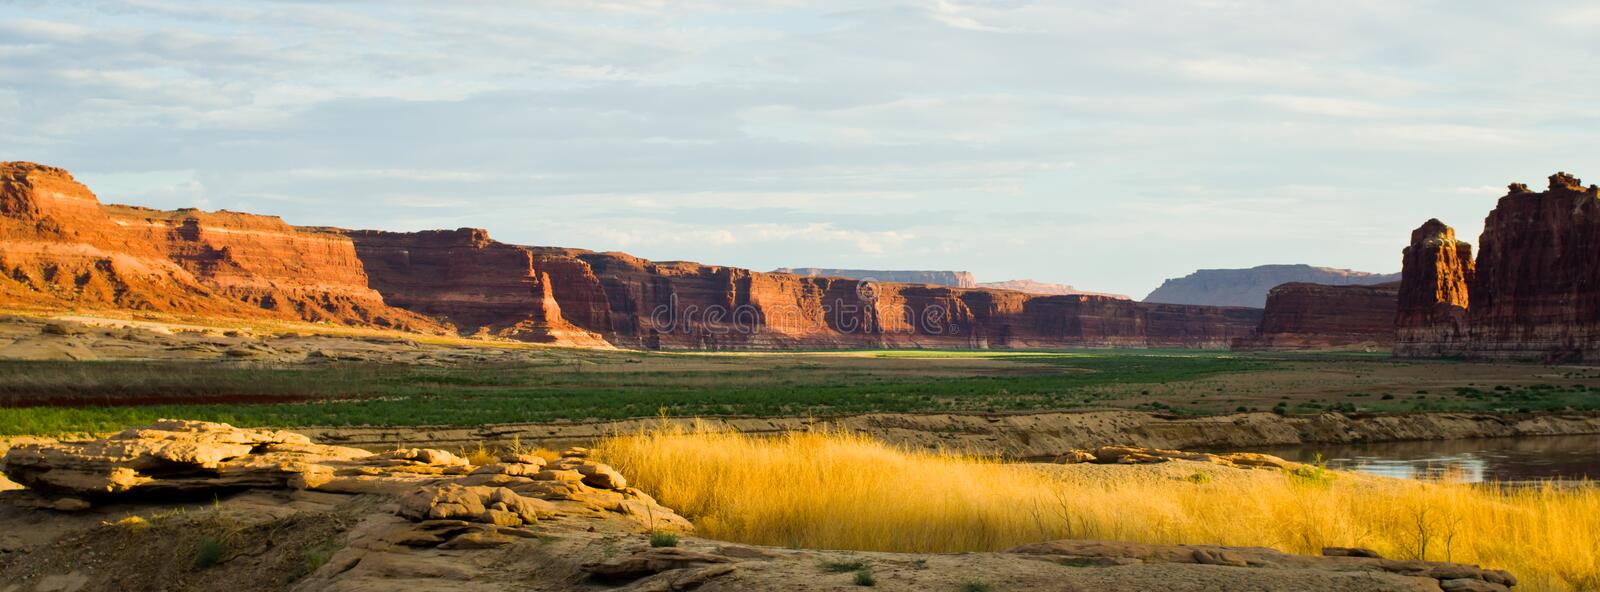 Roadside scenery in Utah at the northern end of the Glen Canyon. Recreation Area royalty free stock photos